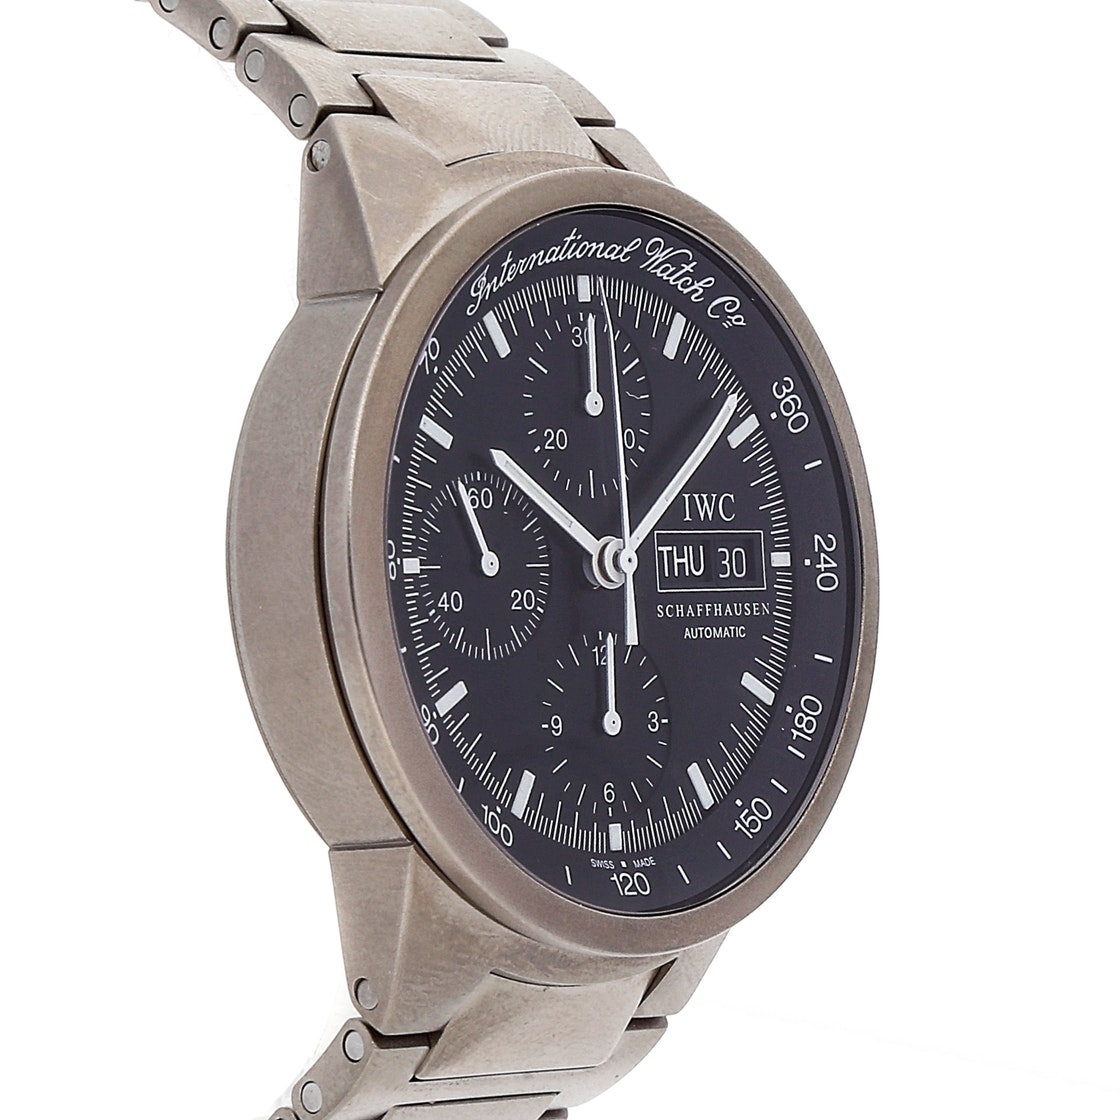 finest selection f0e82 a0867 IWC GST Chronograph IW3707-03